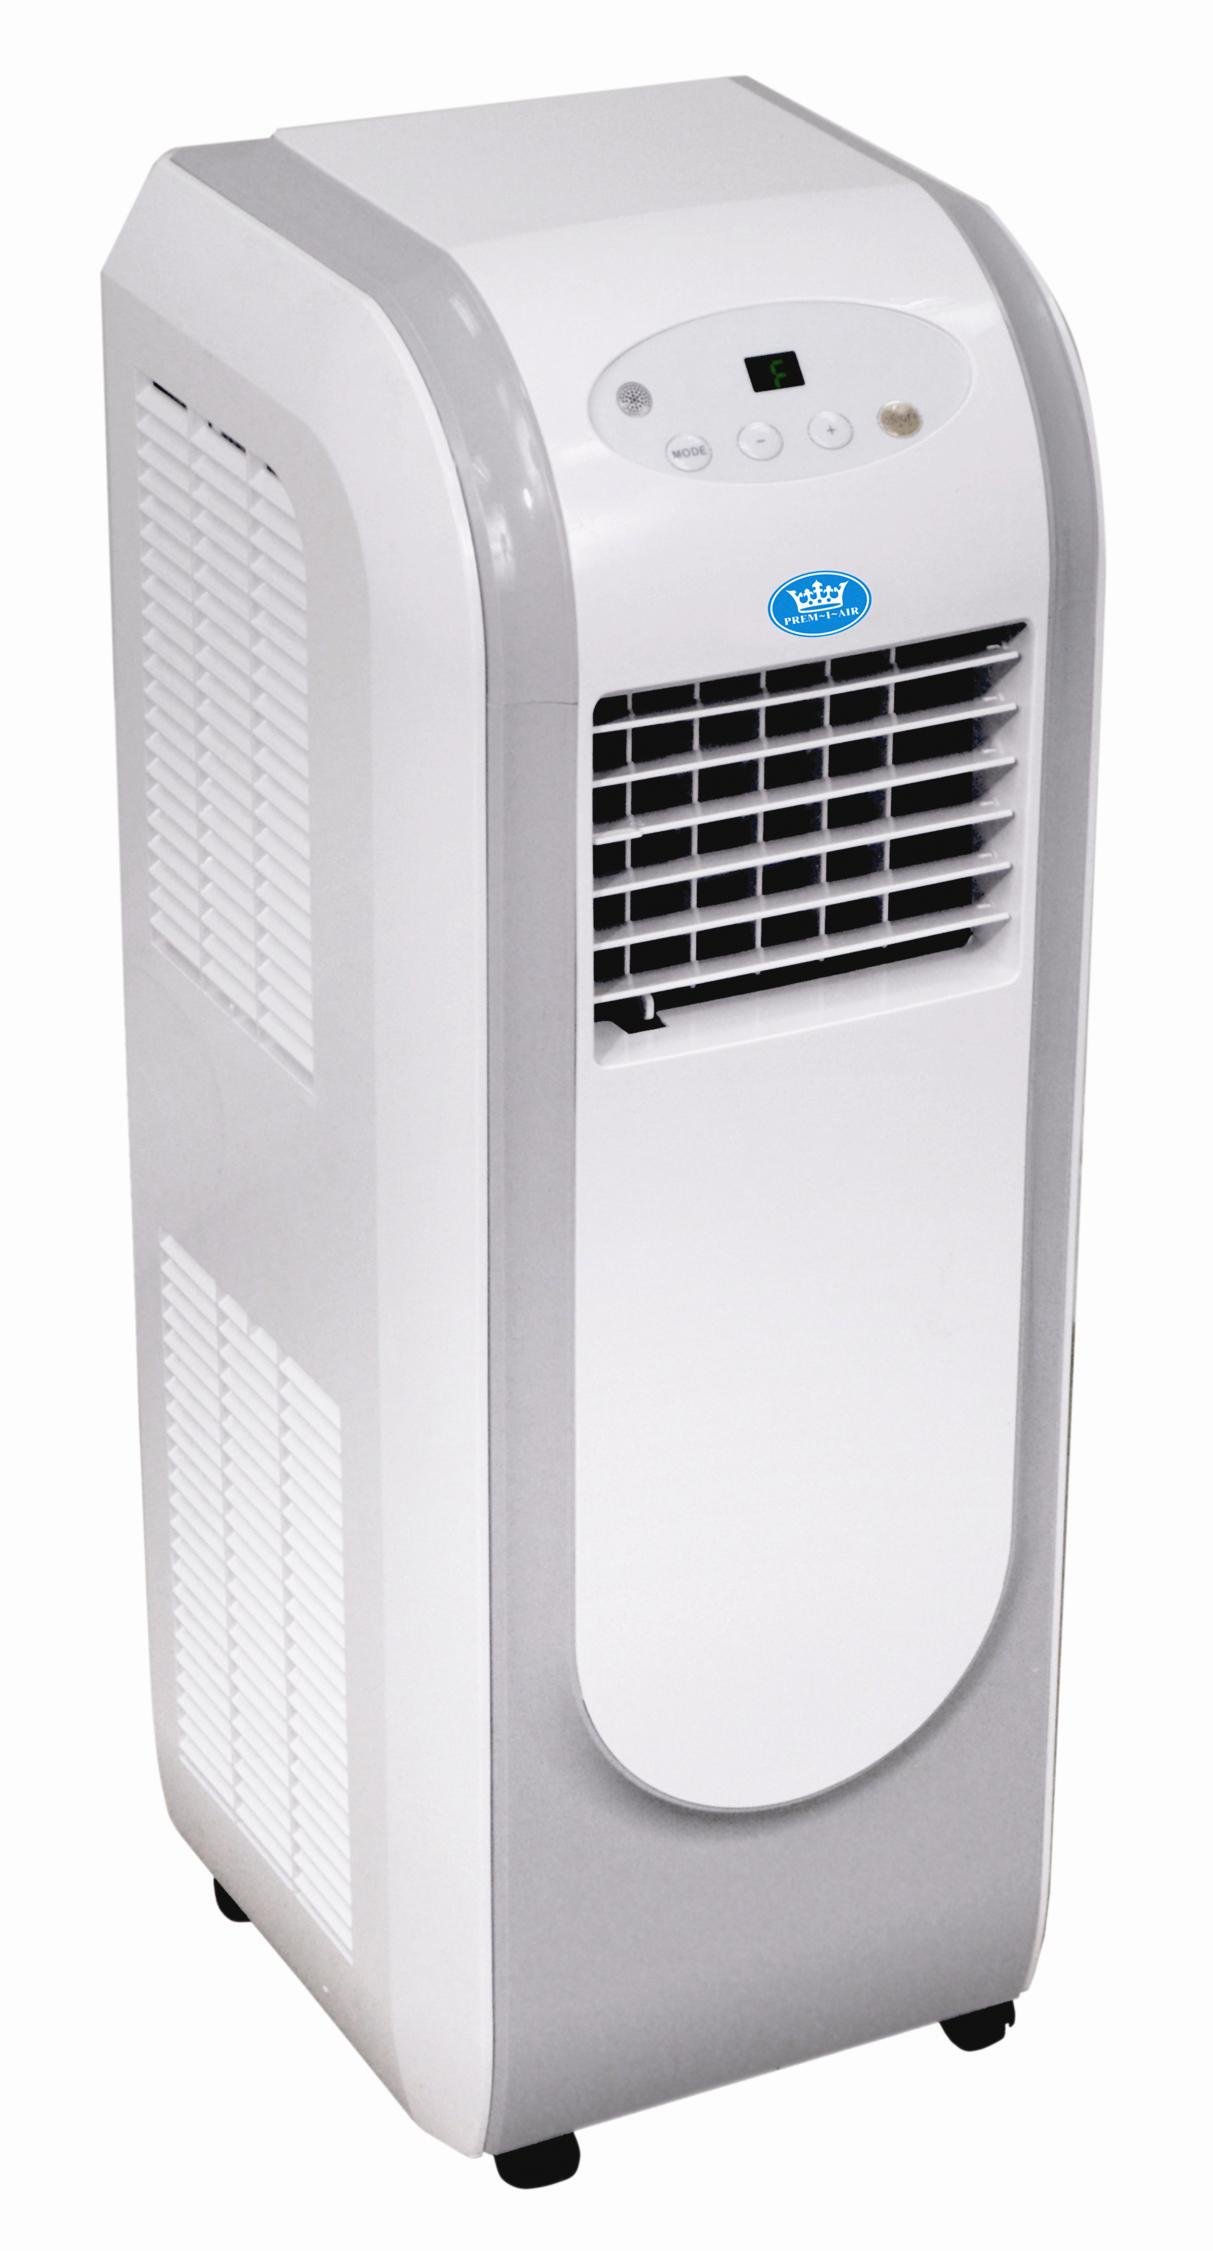 prem-i-air erh1614 8,000btu portable air conditioning unit aircon247